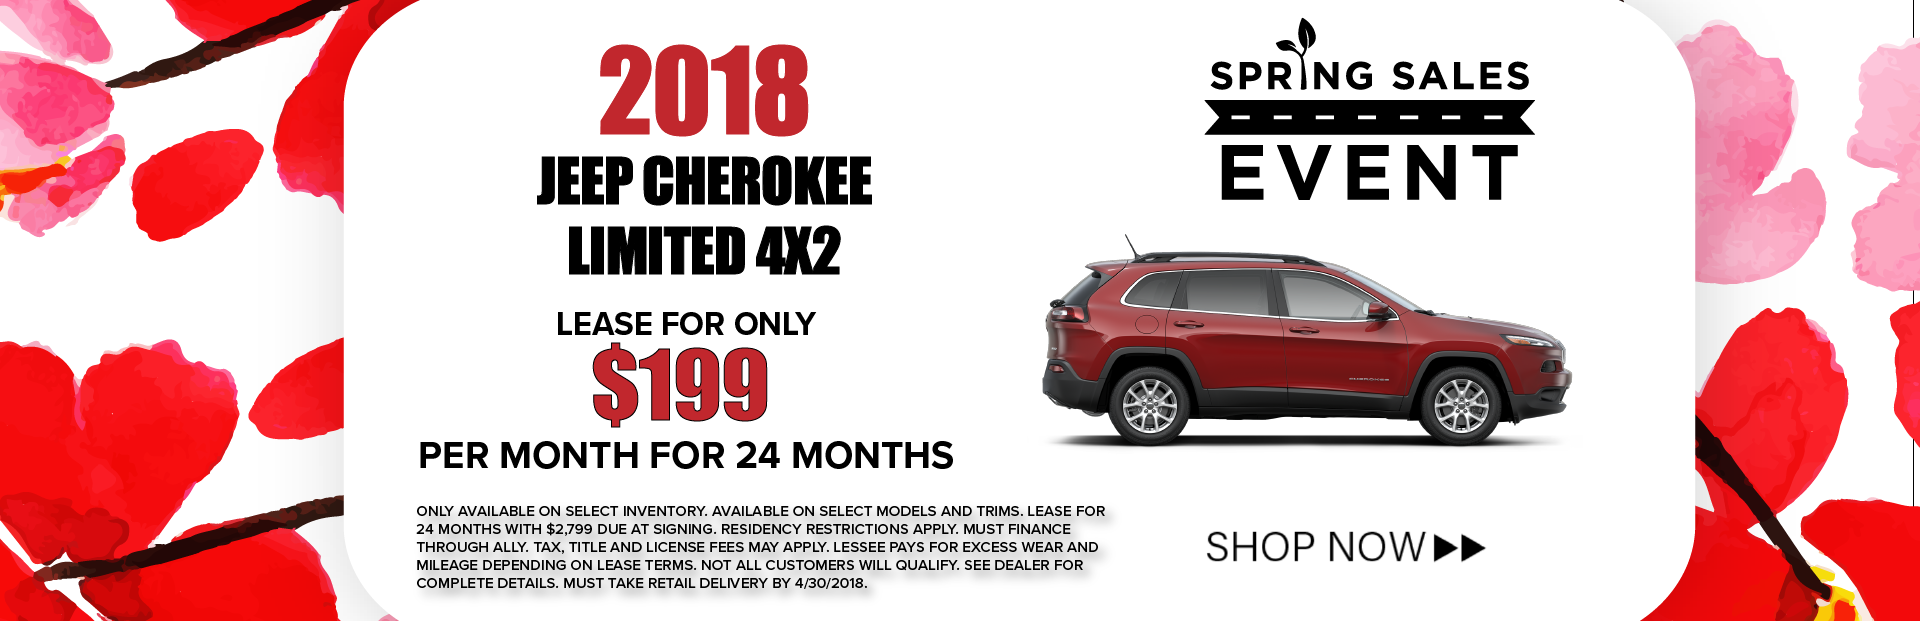 Jeep Cherokee Limited 4X2 Spring Sales Event Banner